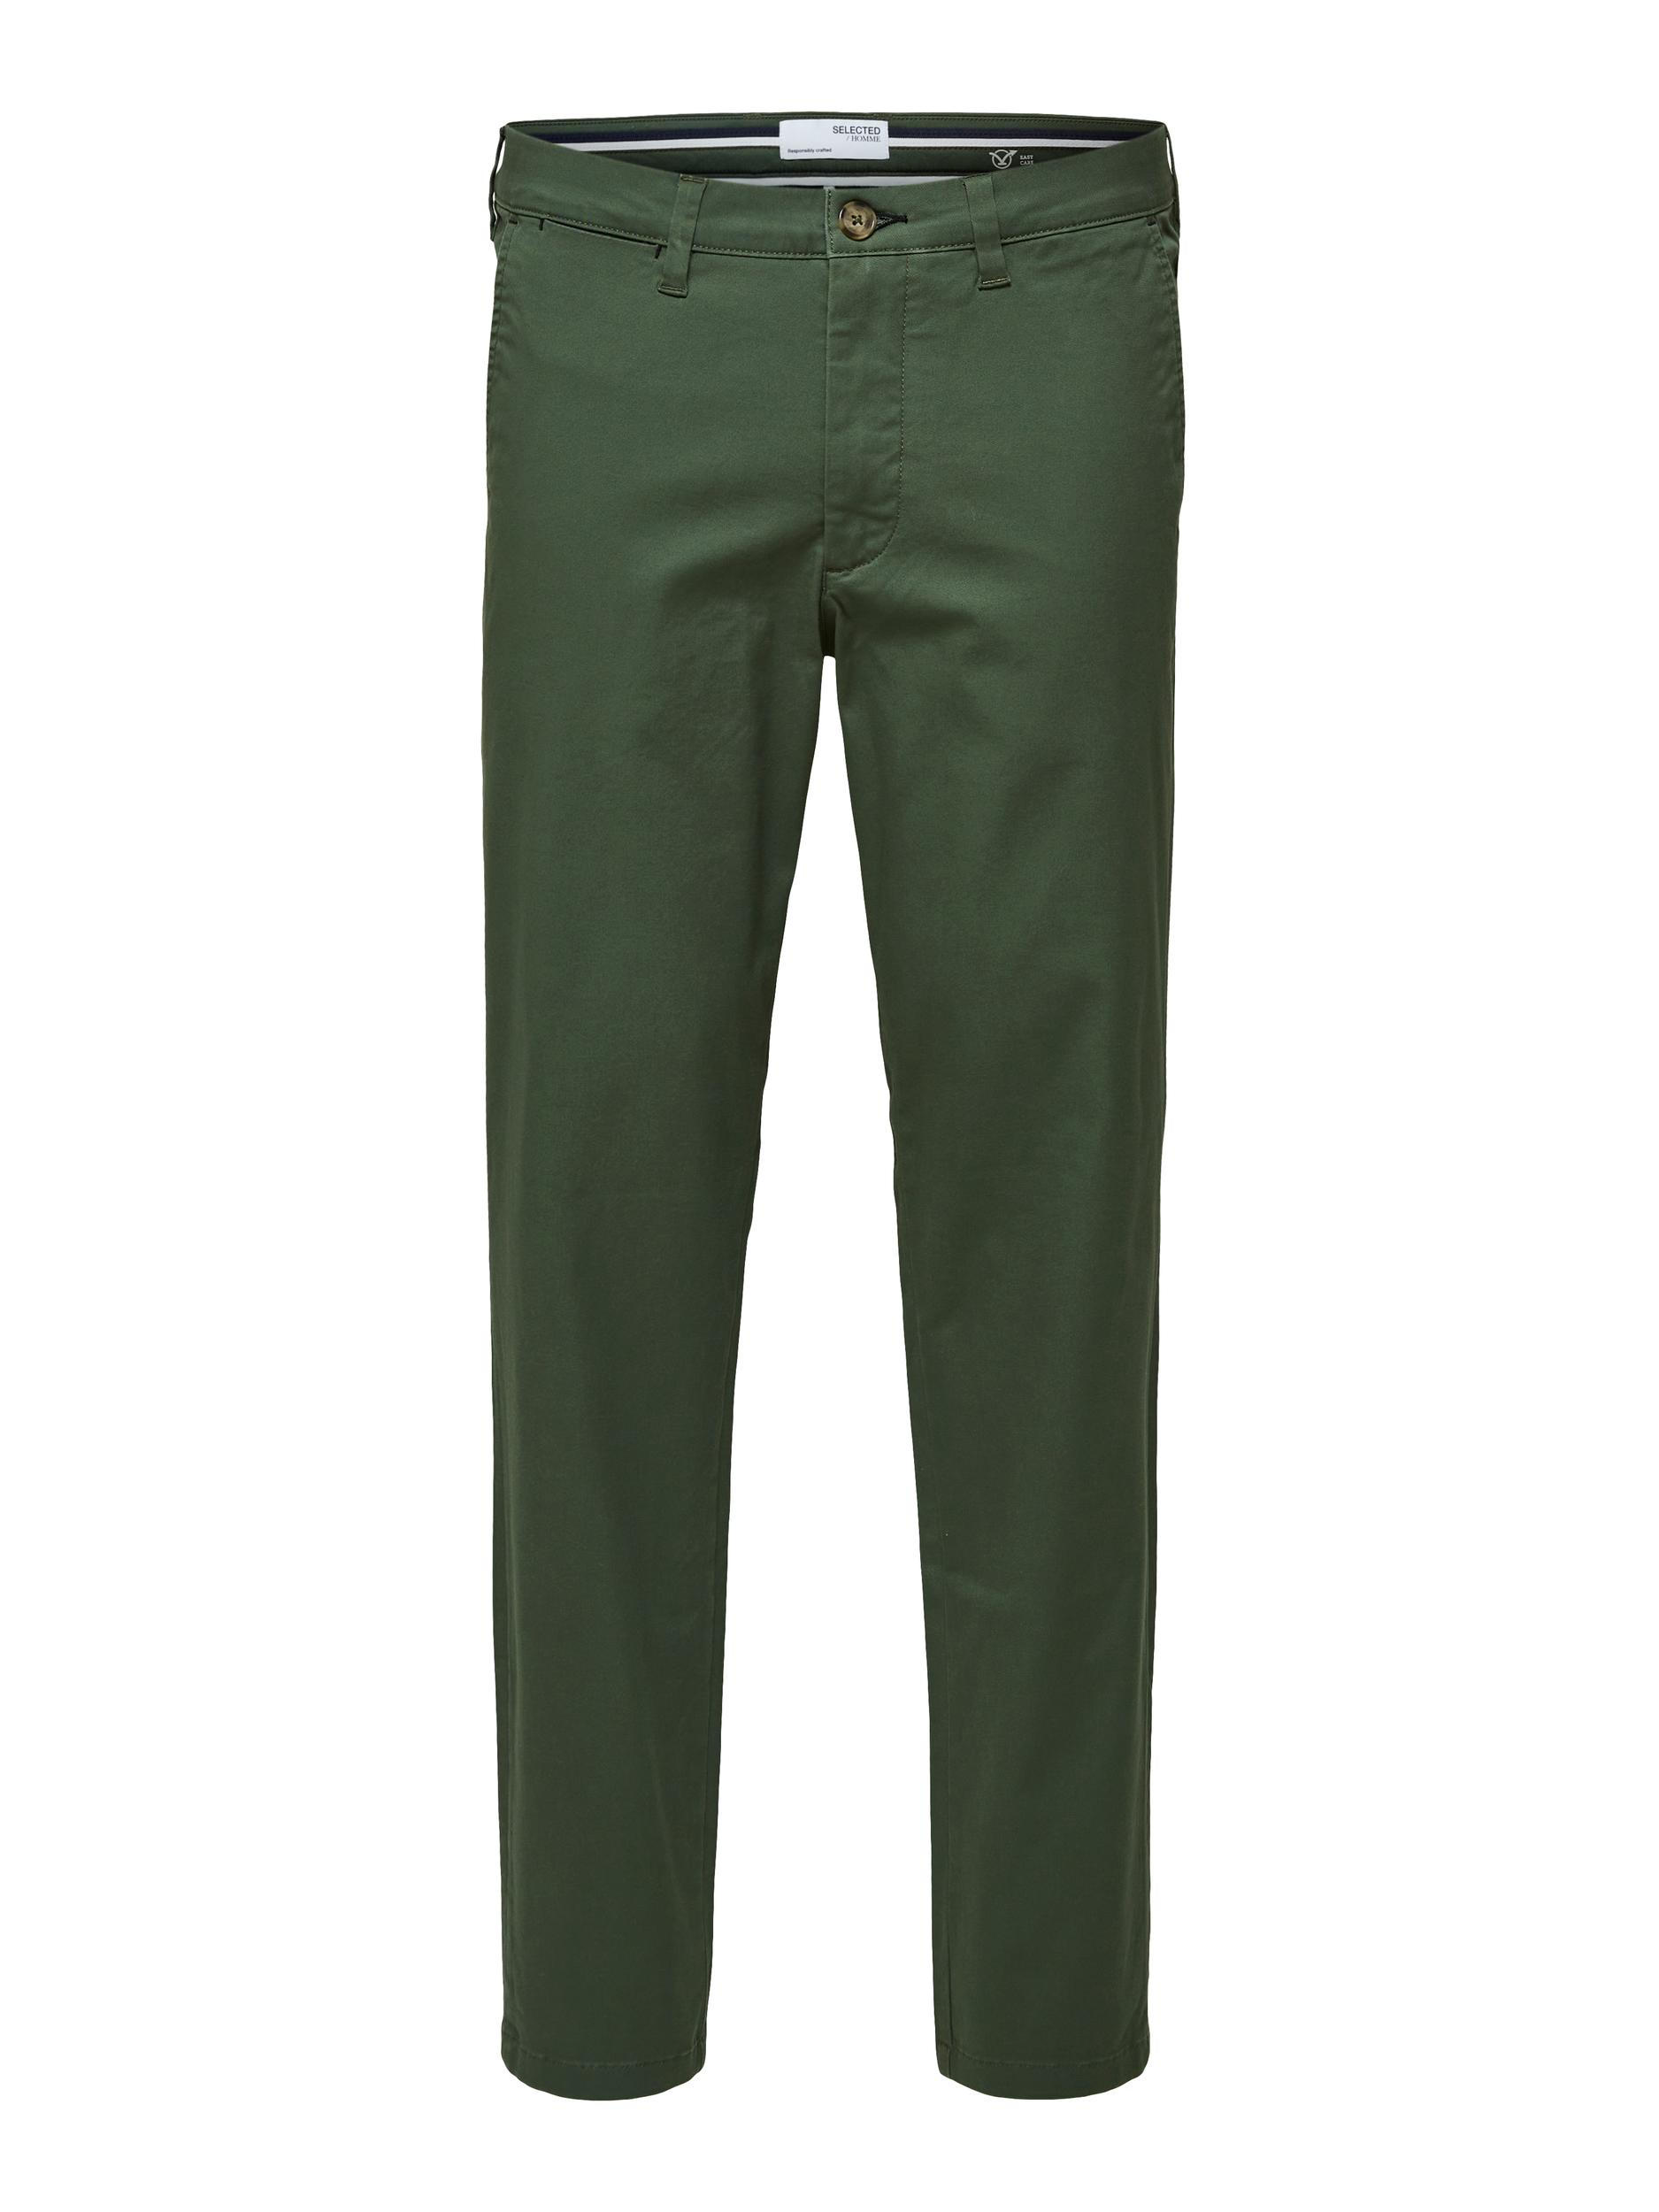 Selected Homme Miles Slim Flex chinos, bronze green, 30/32